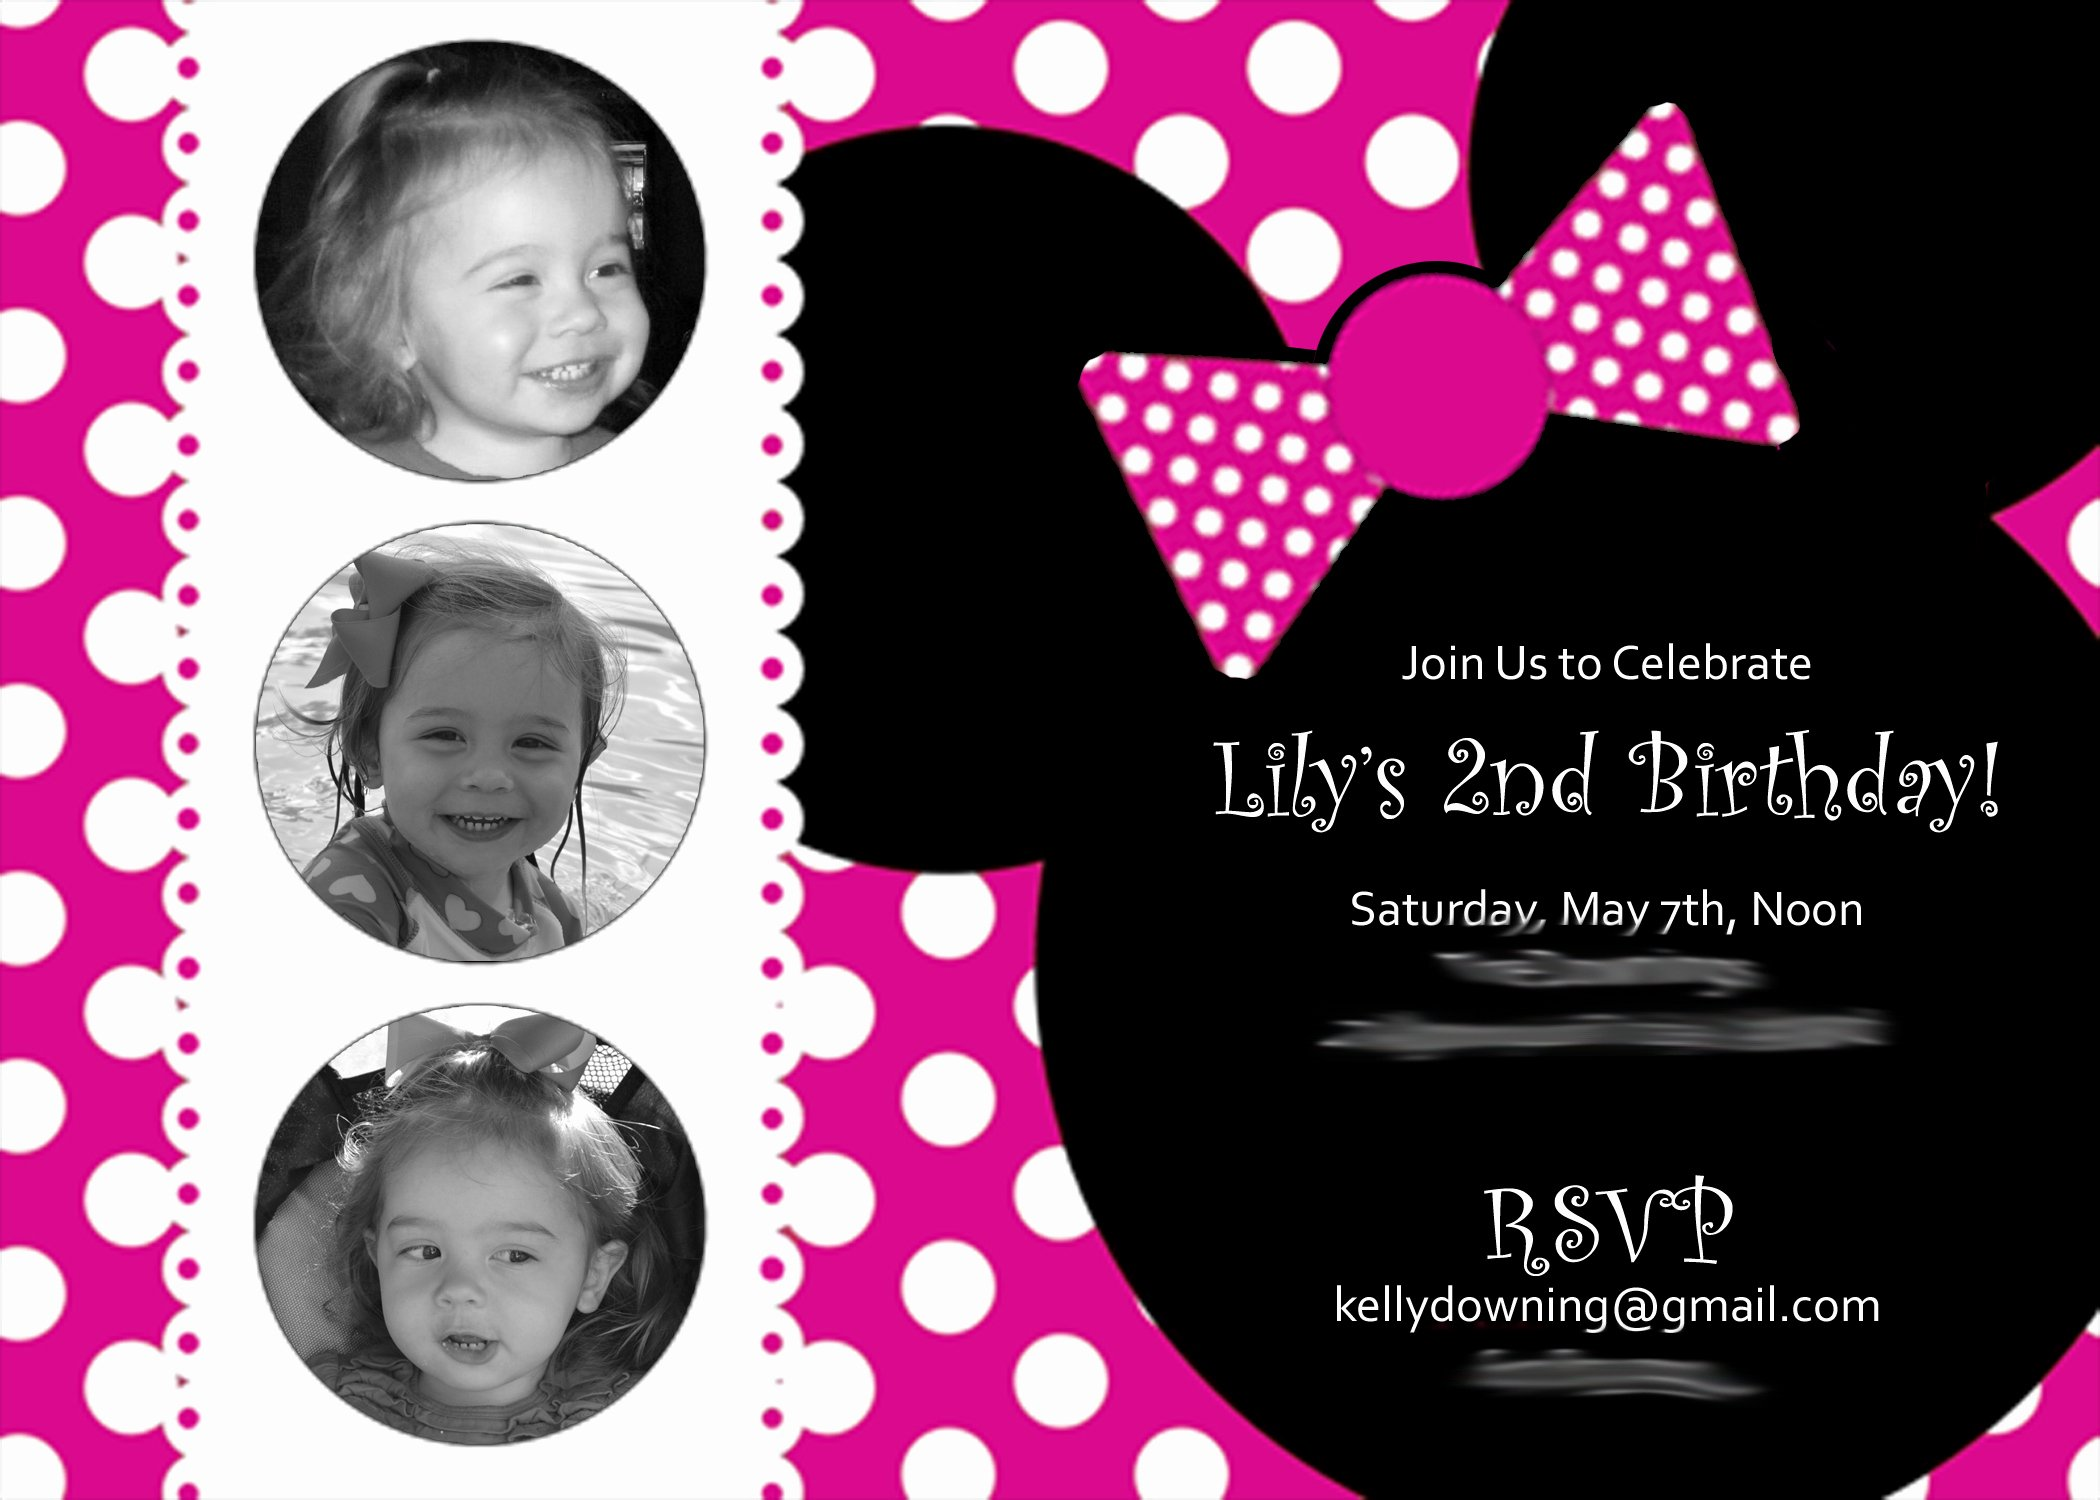 Minnie Mouse Birthday Party Invitations Unique A Two Year's Olds Mini Minnie Birthday Party